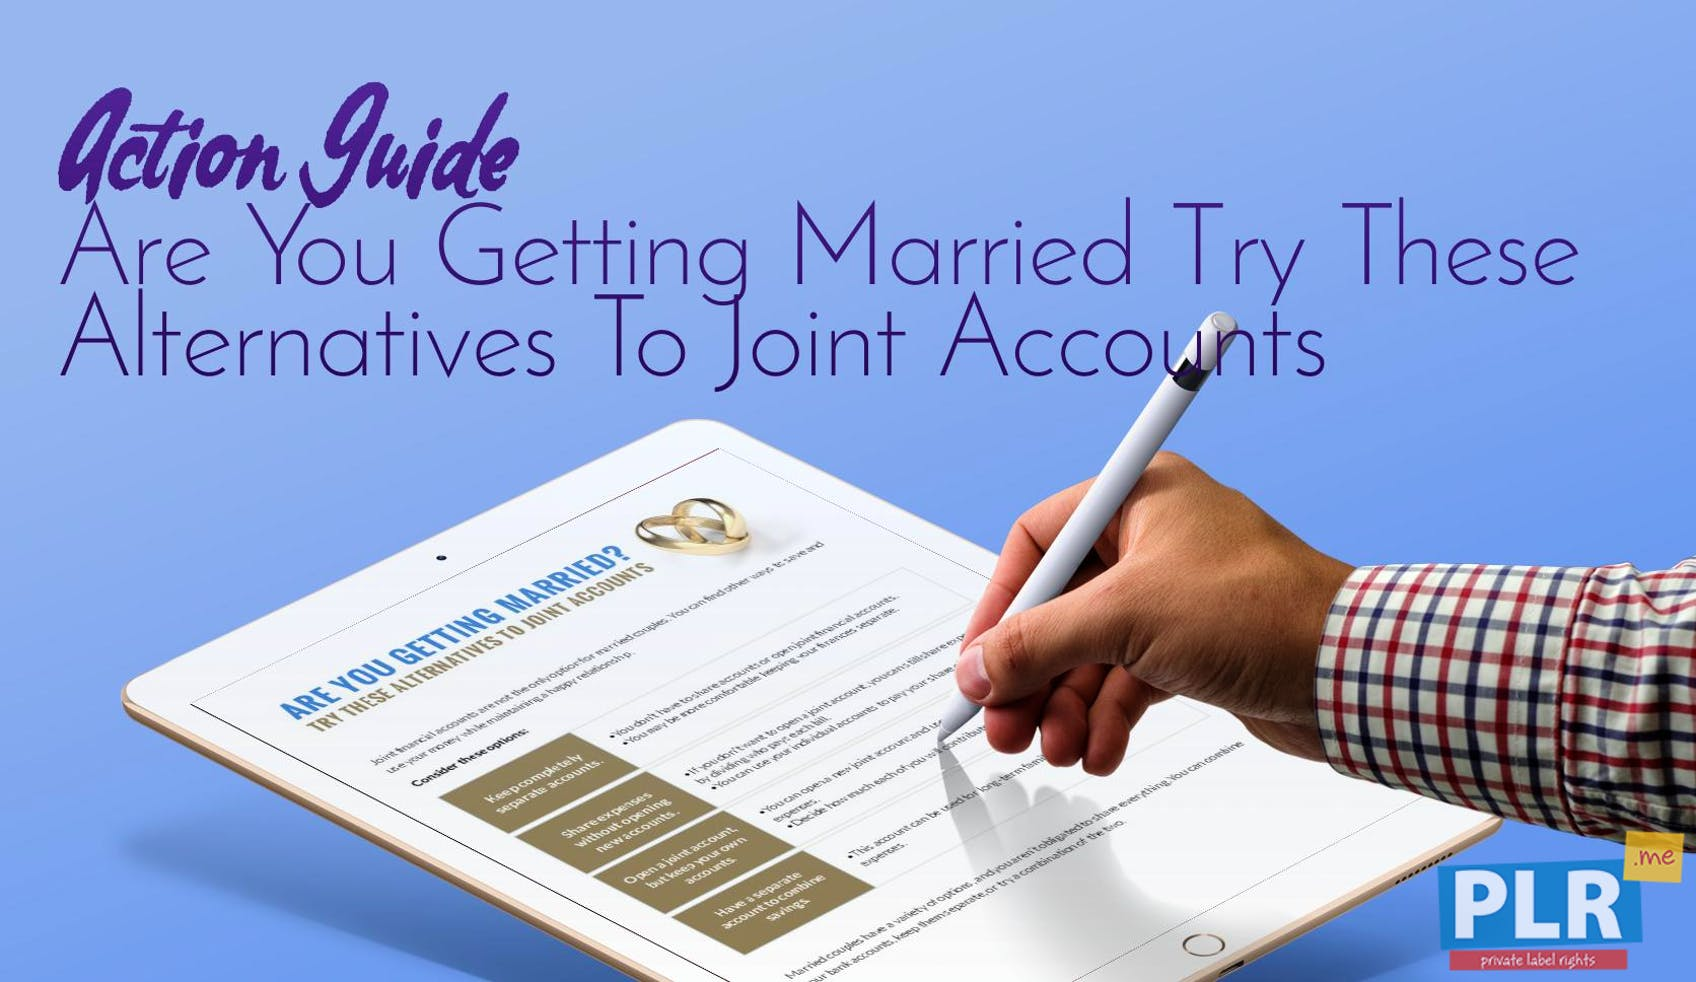 Are You Getting Married Try These Alternatives To Joint Accounts